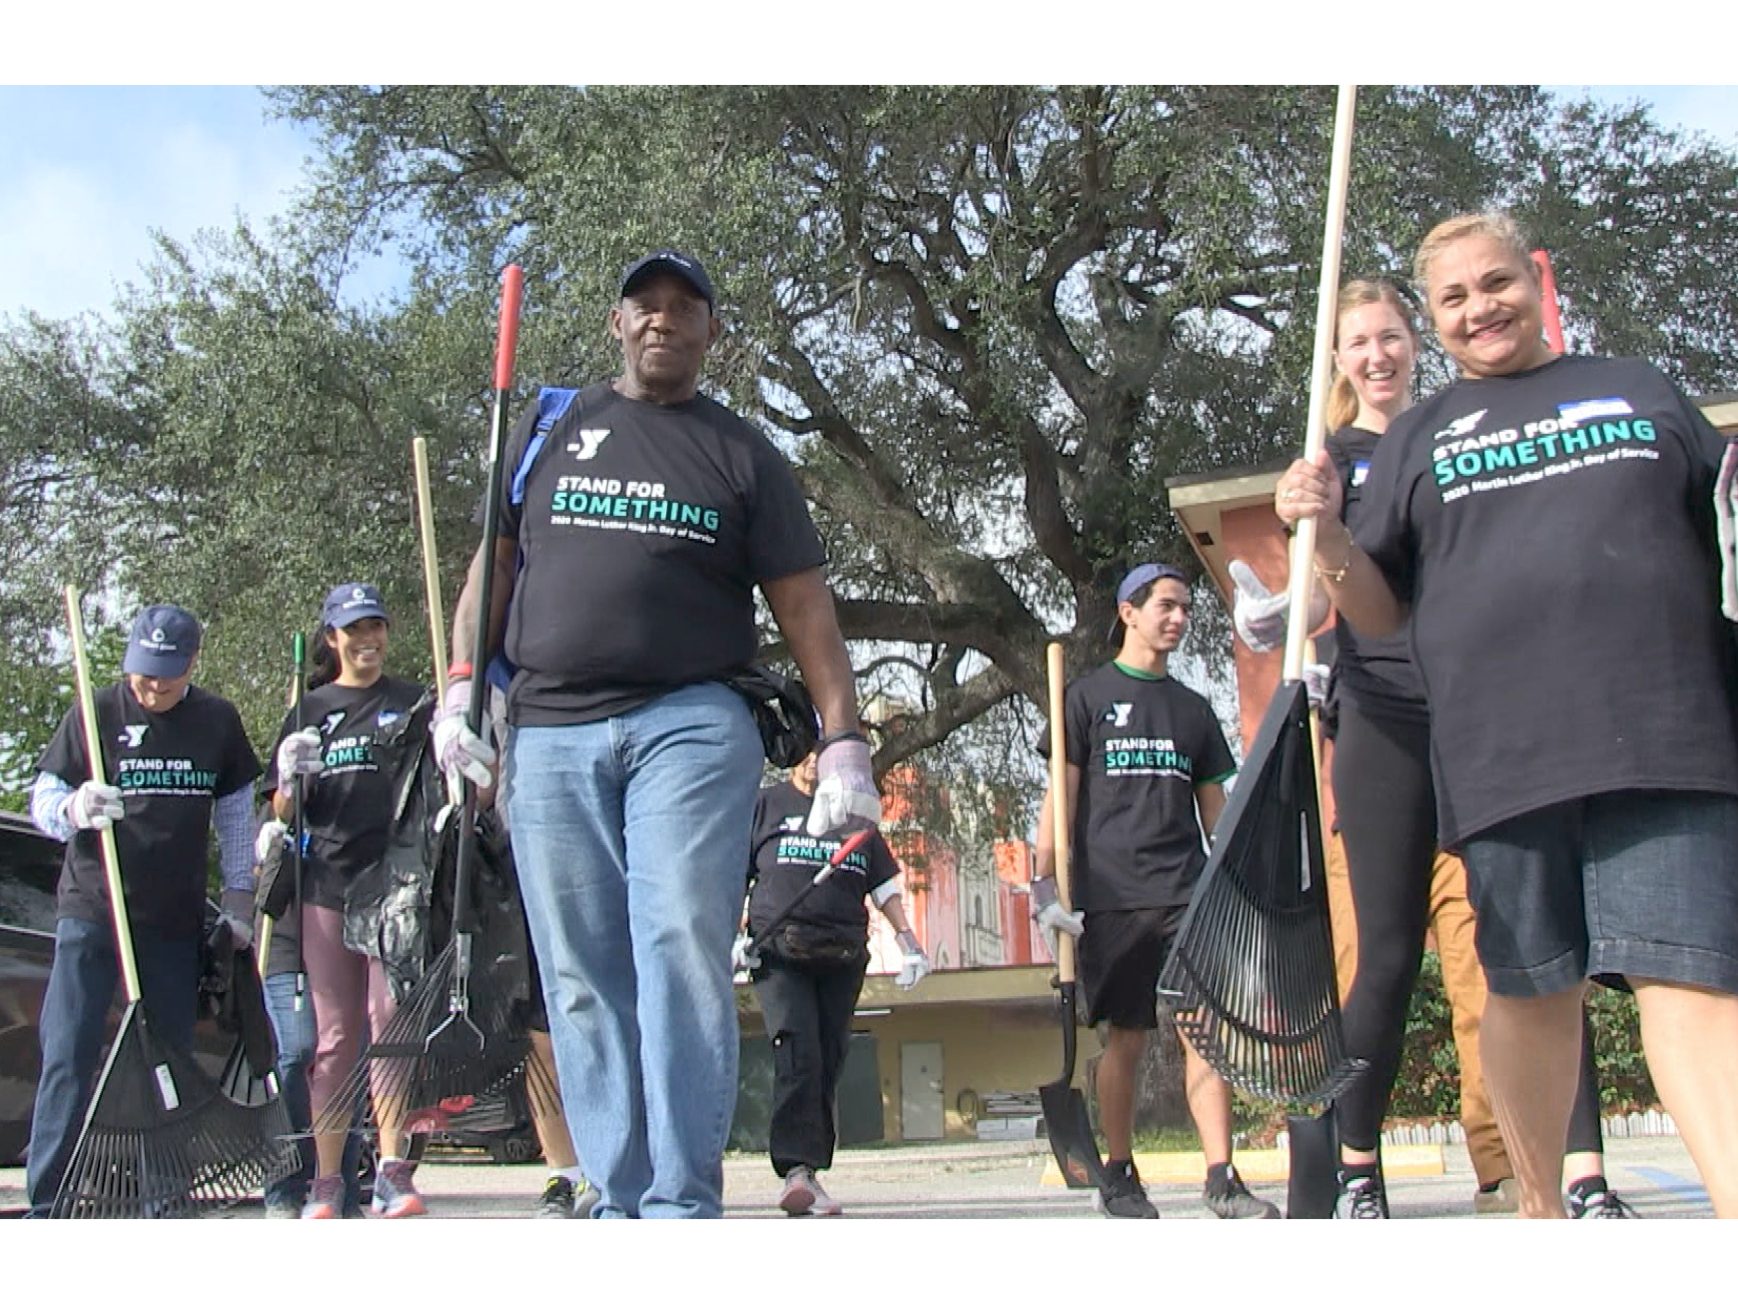 YMCA HOLDS DAY OF COMMUNITY SERVICE ON KING HOLIDAY -NEWS ALERT